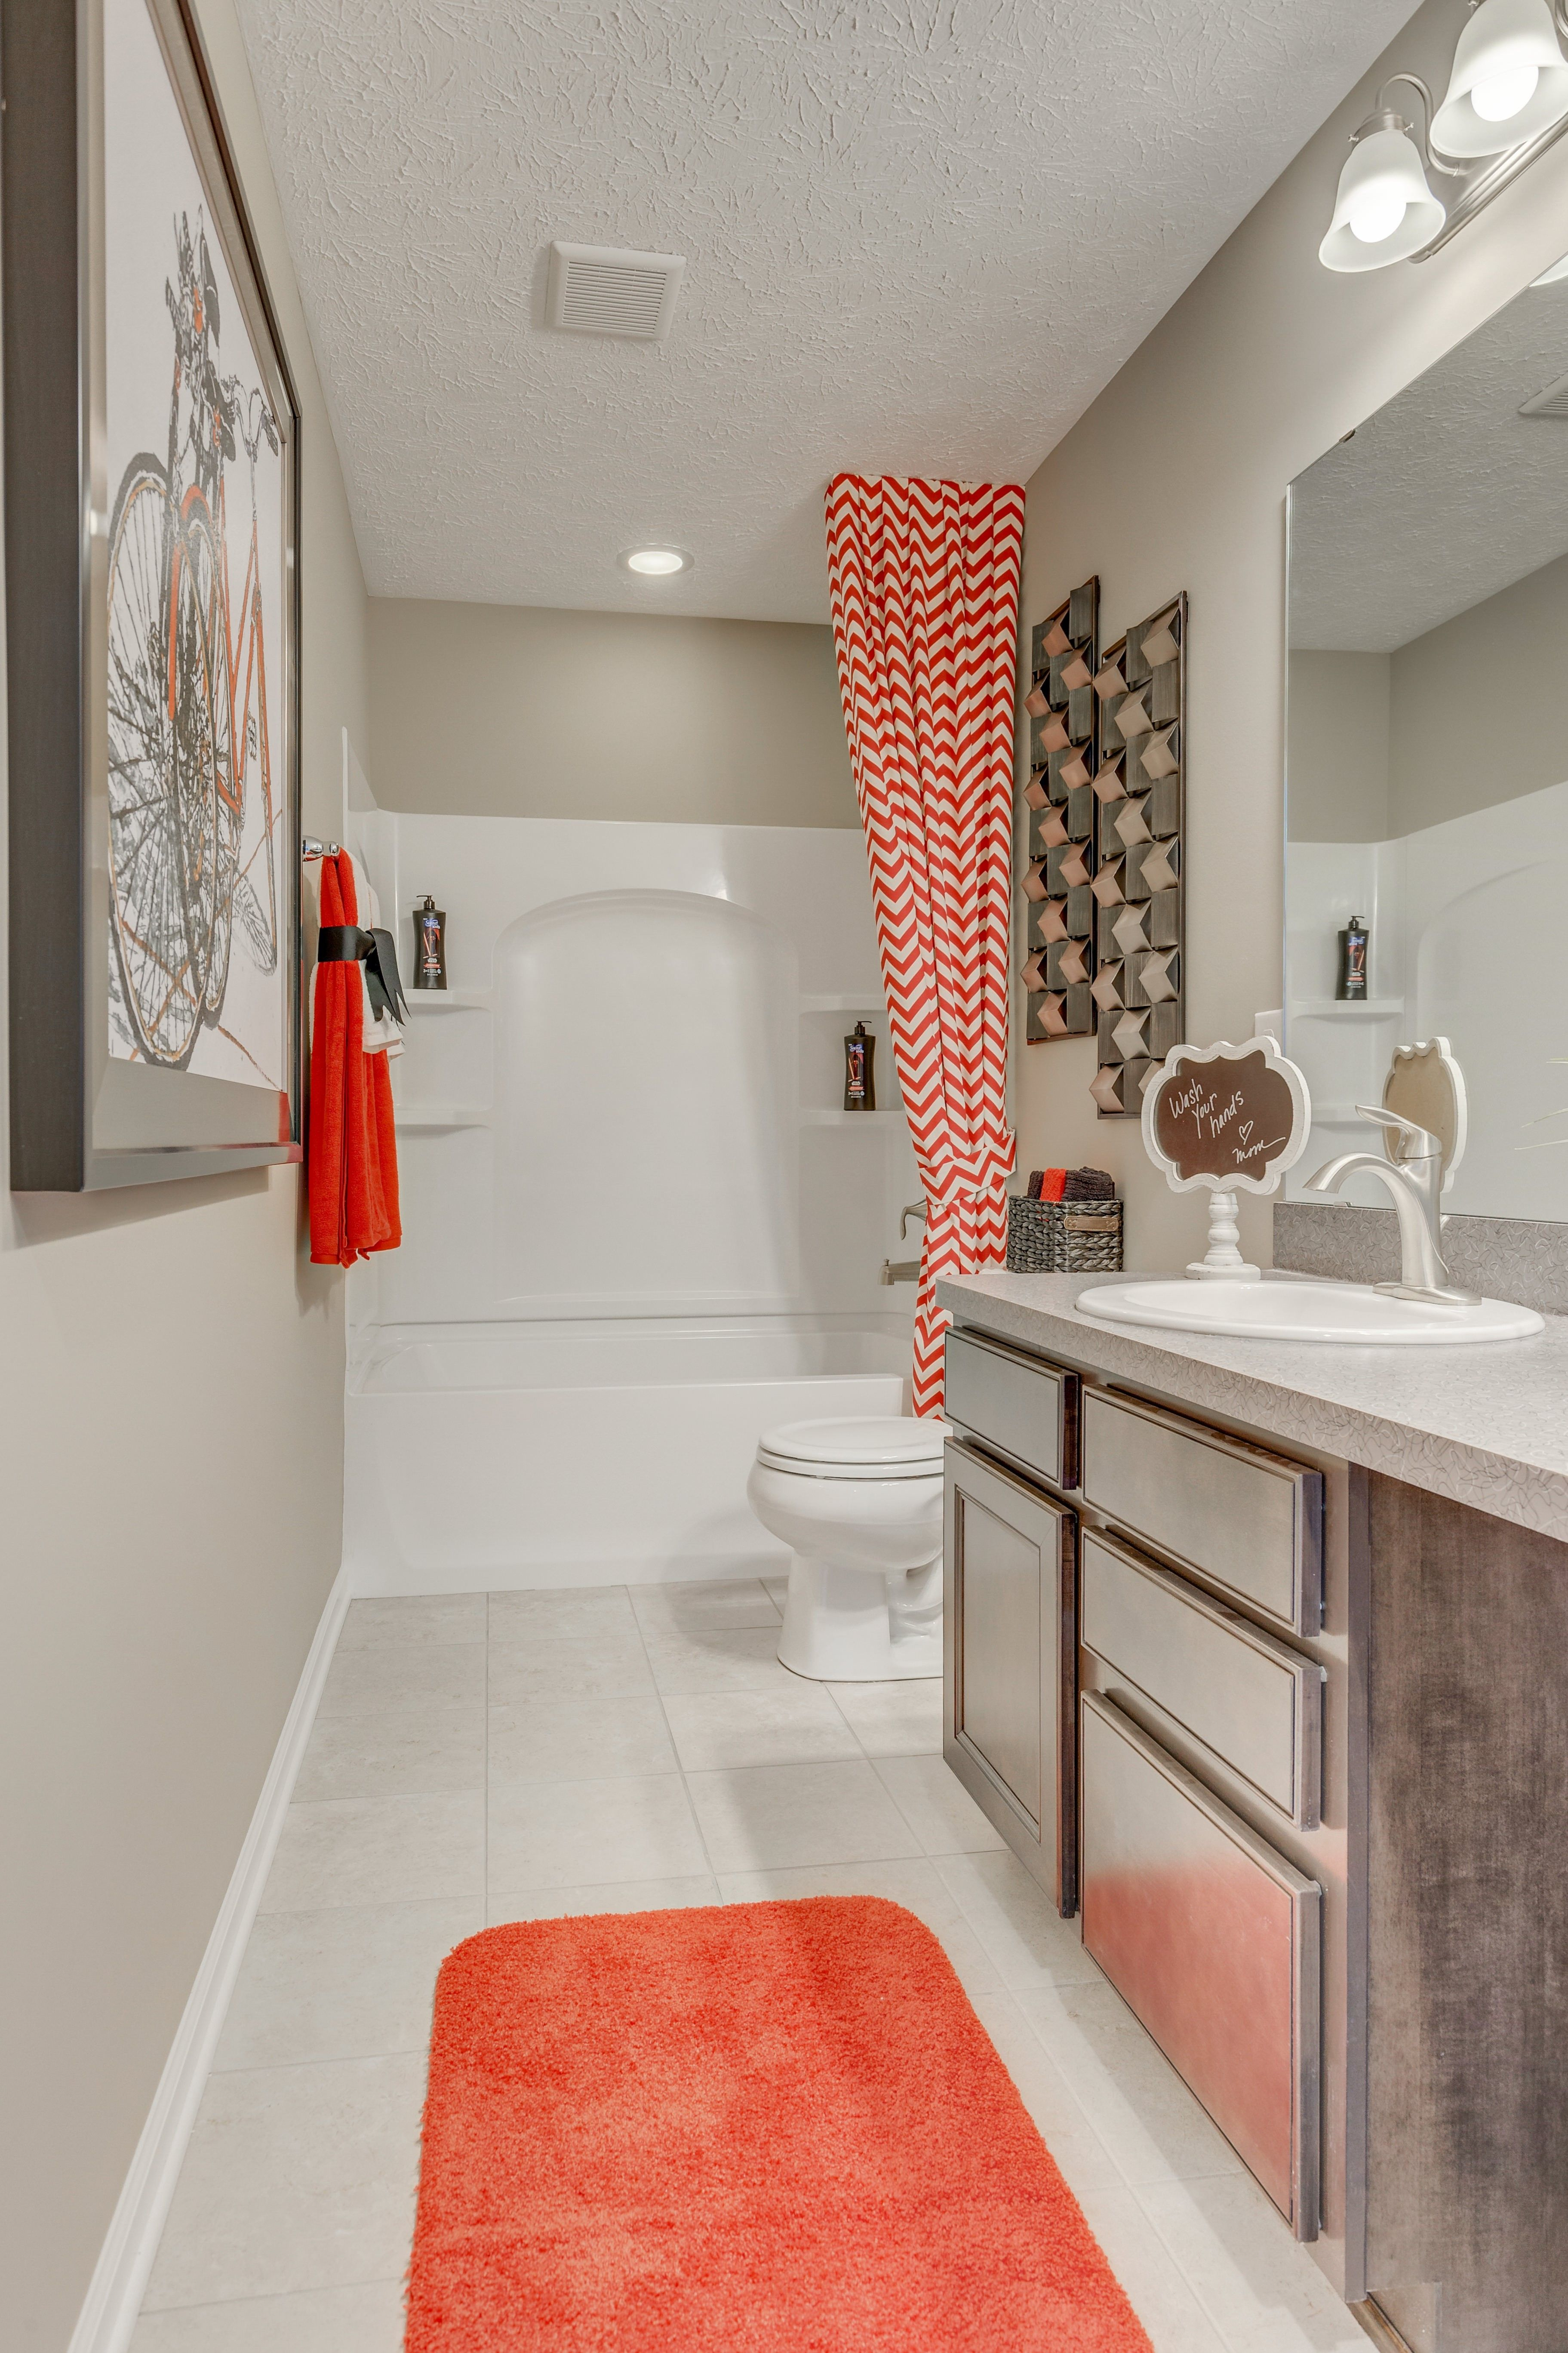 Bathroom featured in the Hanover By K. Hovnanian® Homes in Cleveland, OH